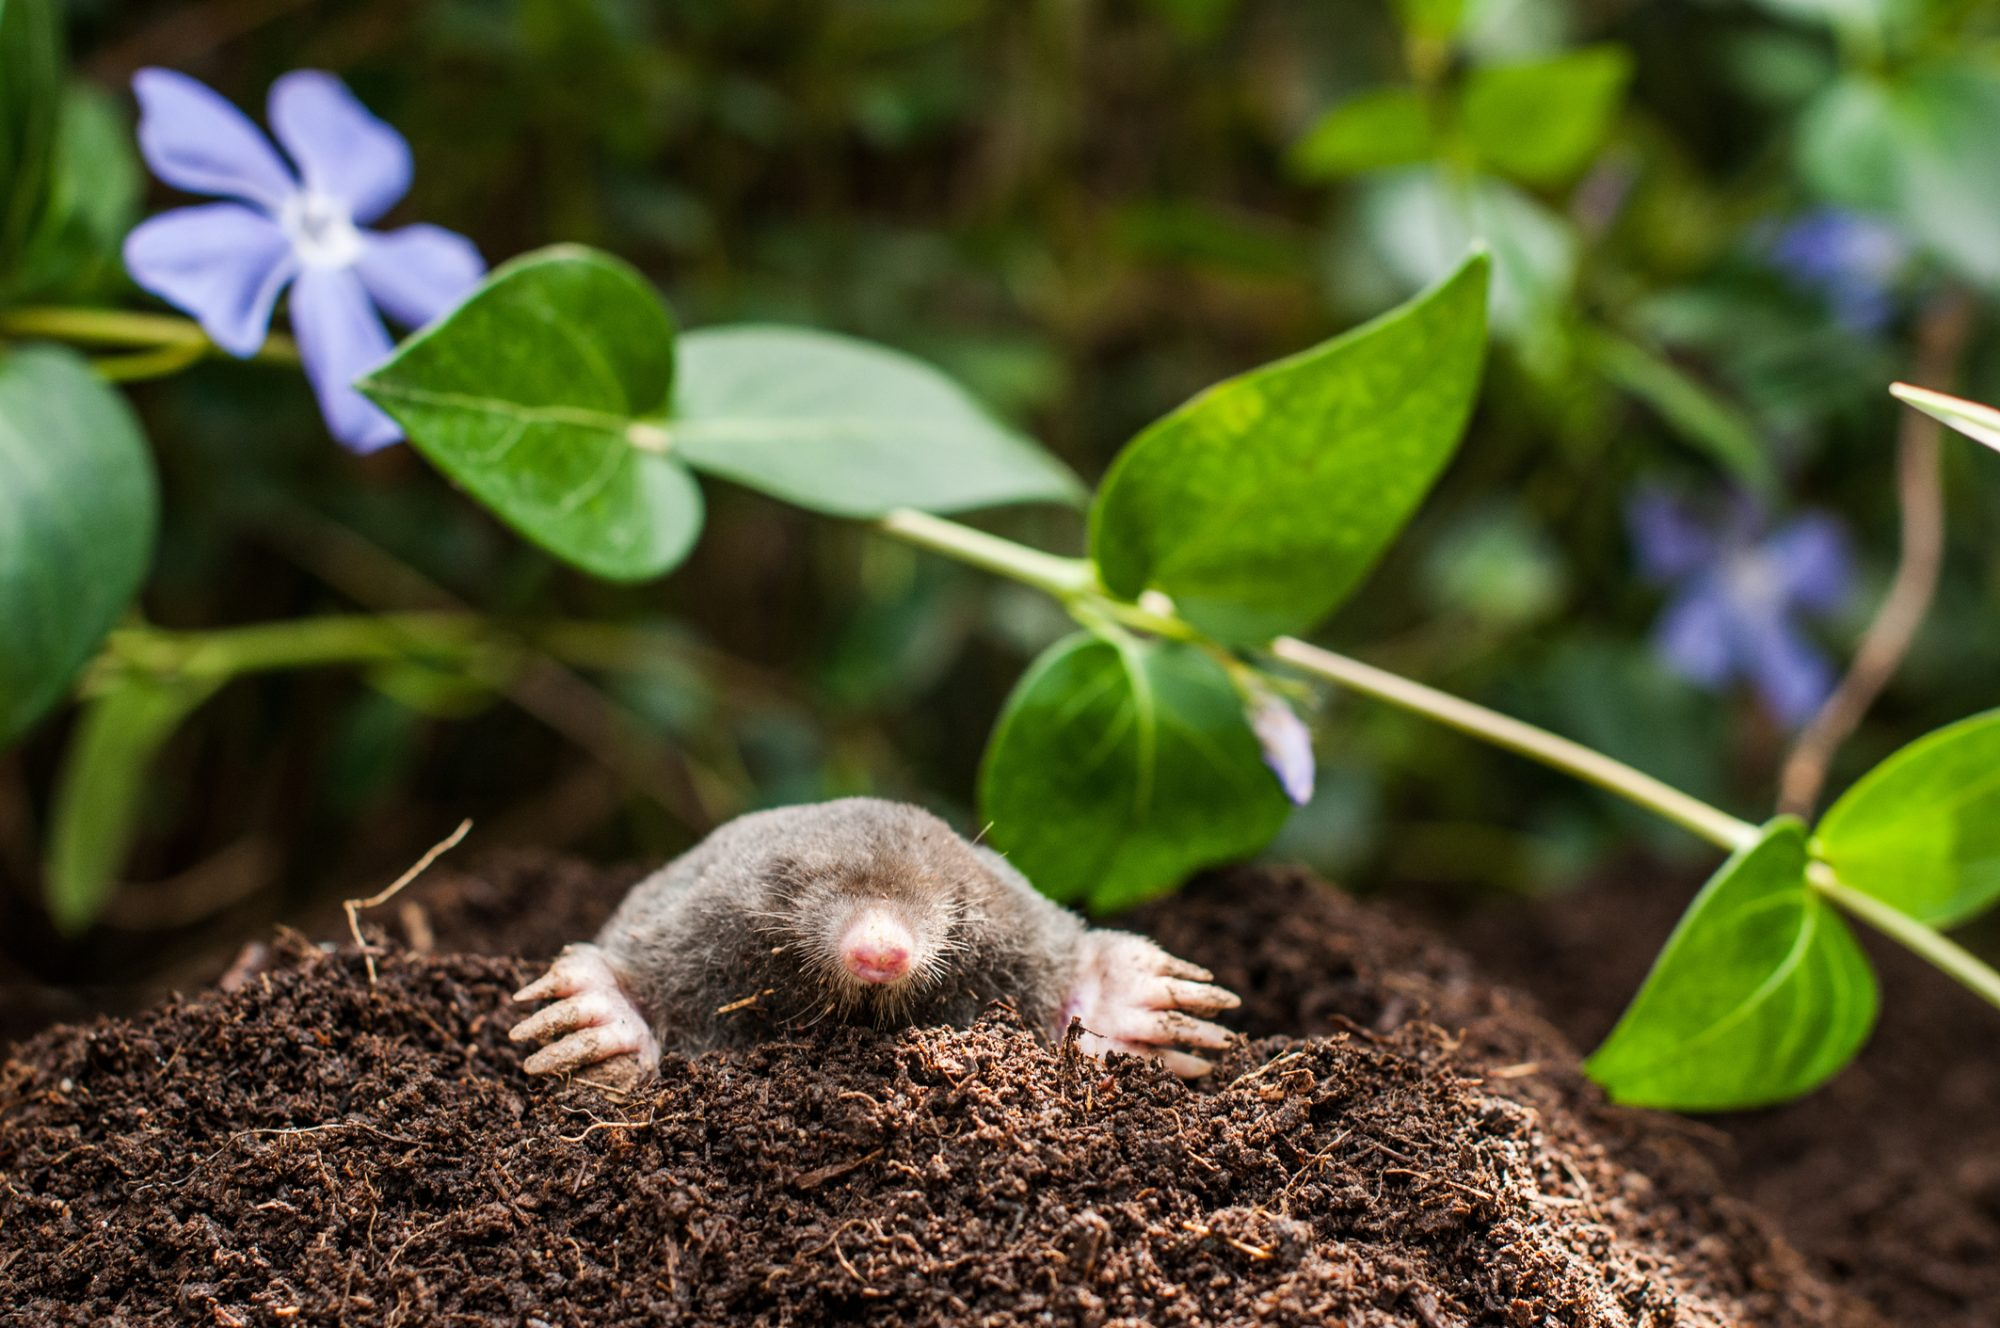 Mole in Hole with Purple Flower